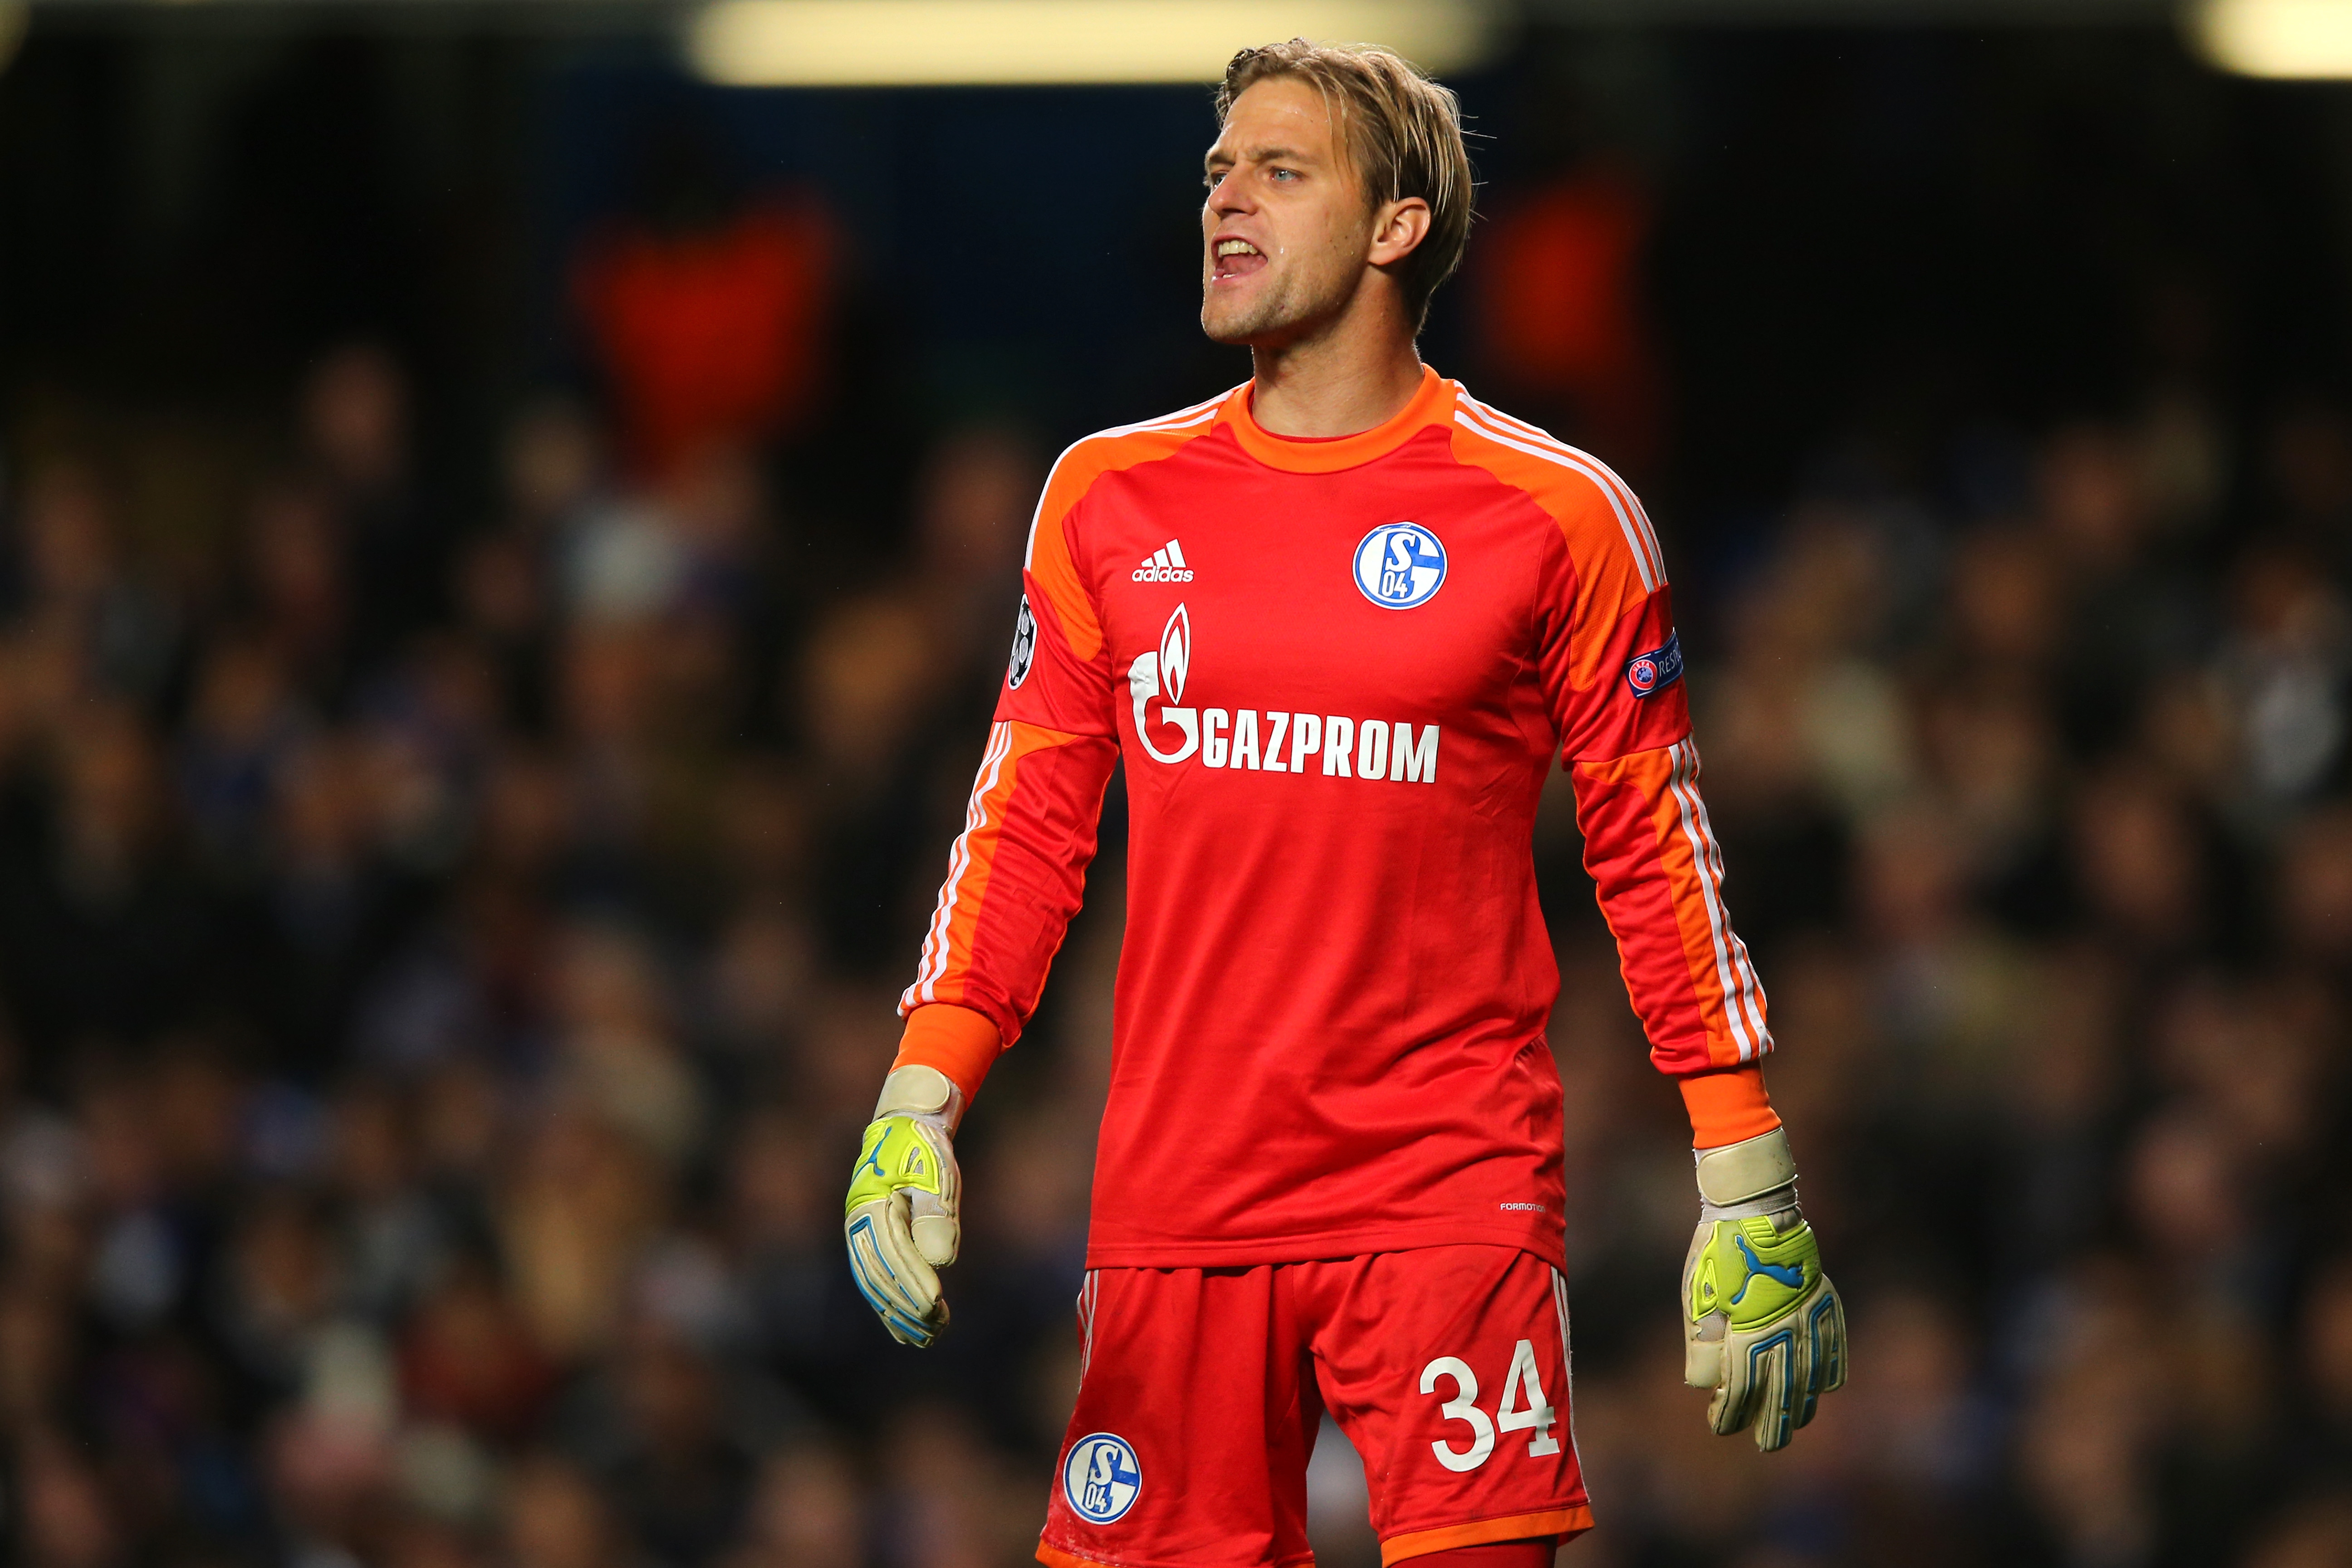 LONDON, ENGLAND - NOVEMBER 06:  Goalkeeper Timo Hildebrand of Schalke reacts during the UEFA Champions League Group E match between Chelsea and FC Schalke 04 at Stamford Bridge on November 6, 2013 in London, England.  (Photo by Clive Rose/Getty Images)